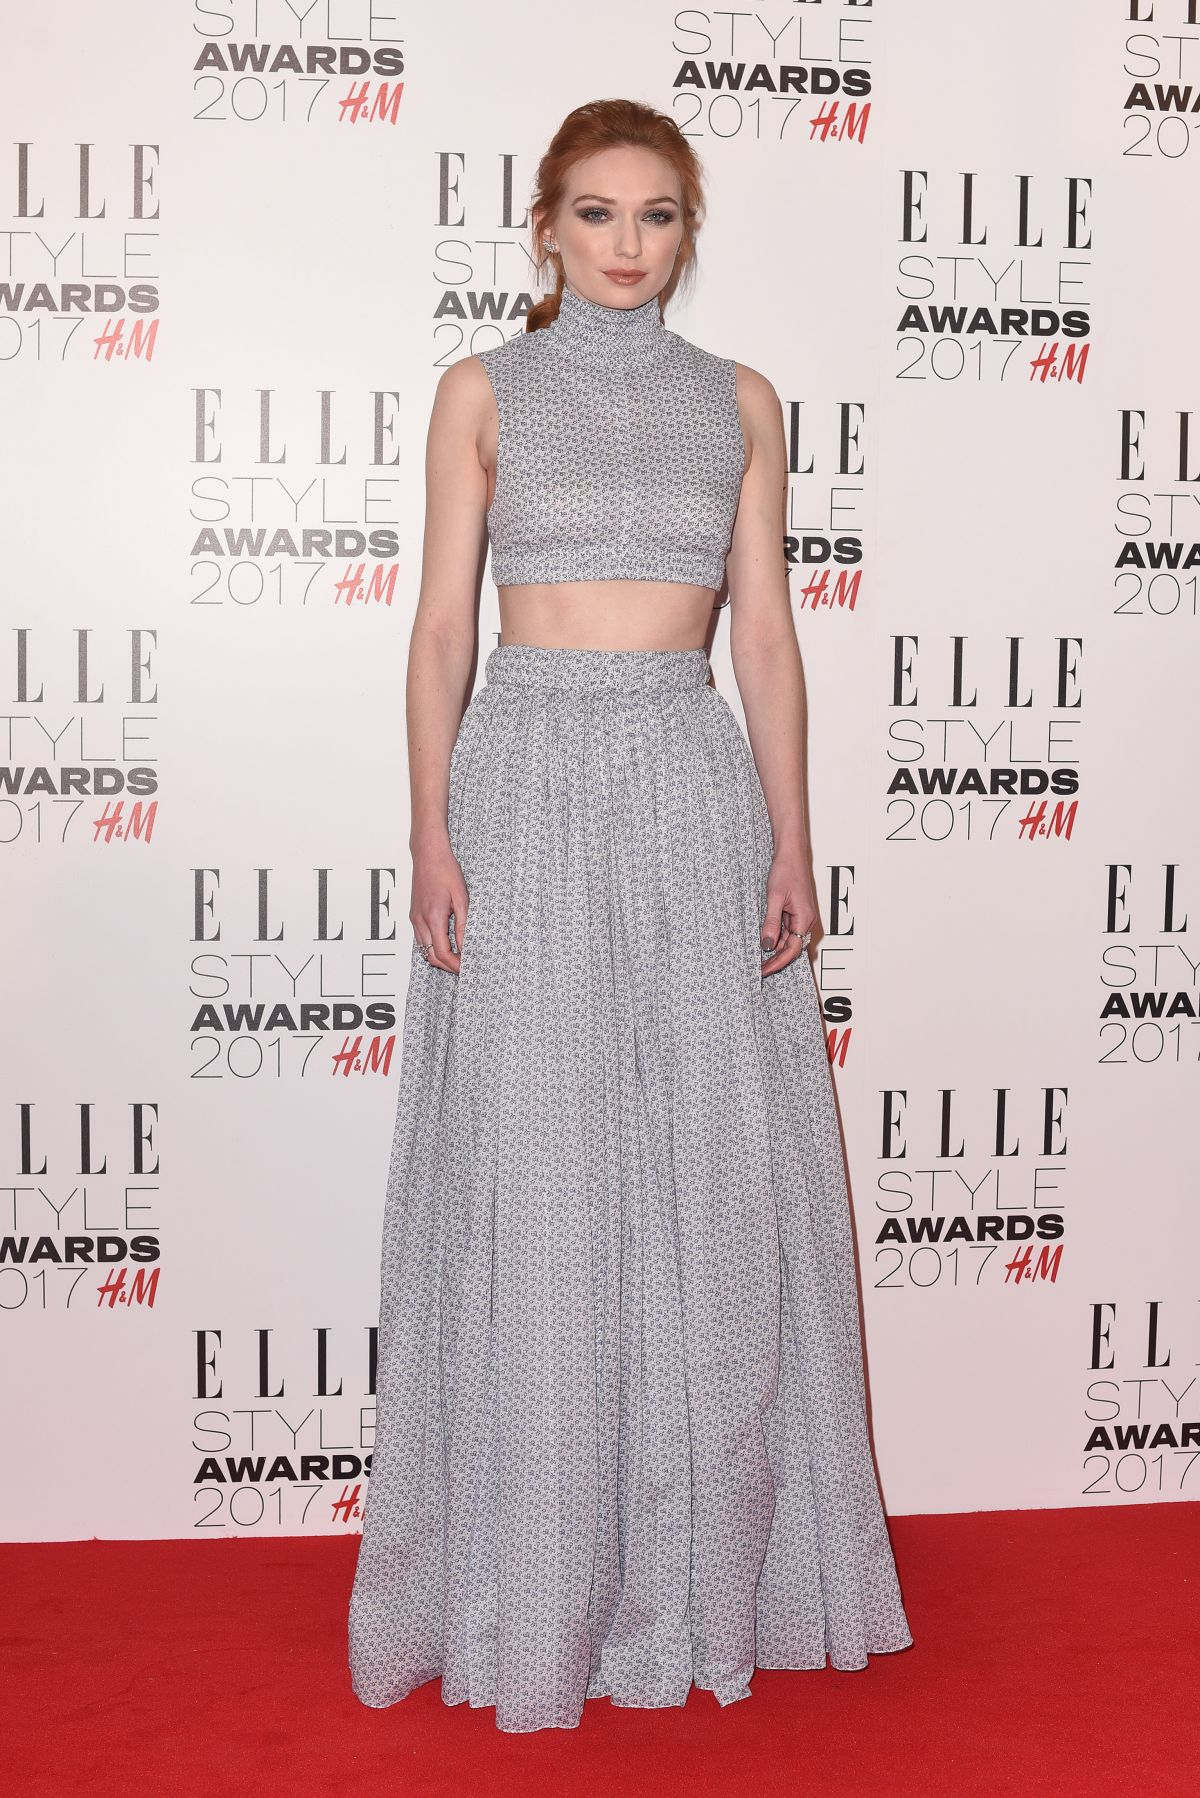 ELEANOR TOMLINSON at Elle Style Awards 2017 in London 02/13/2017